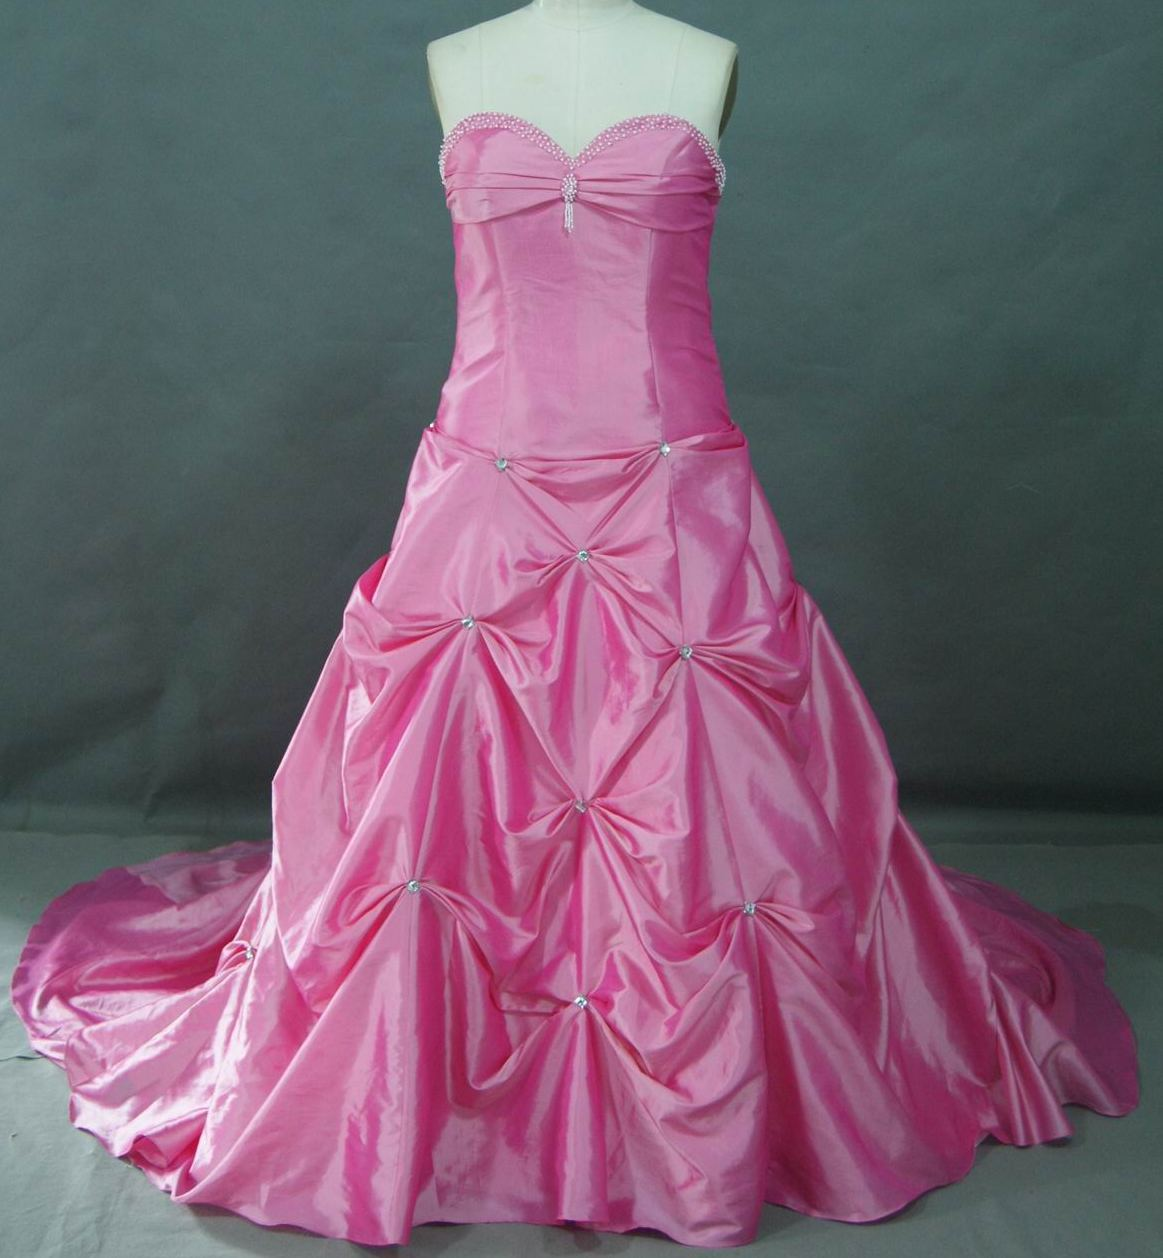 long Bubblegum pink dress